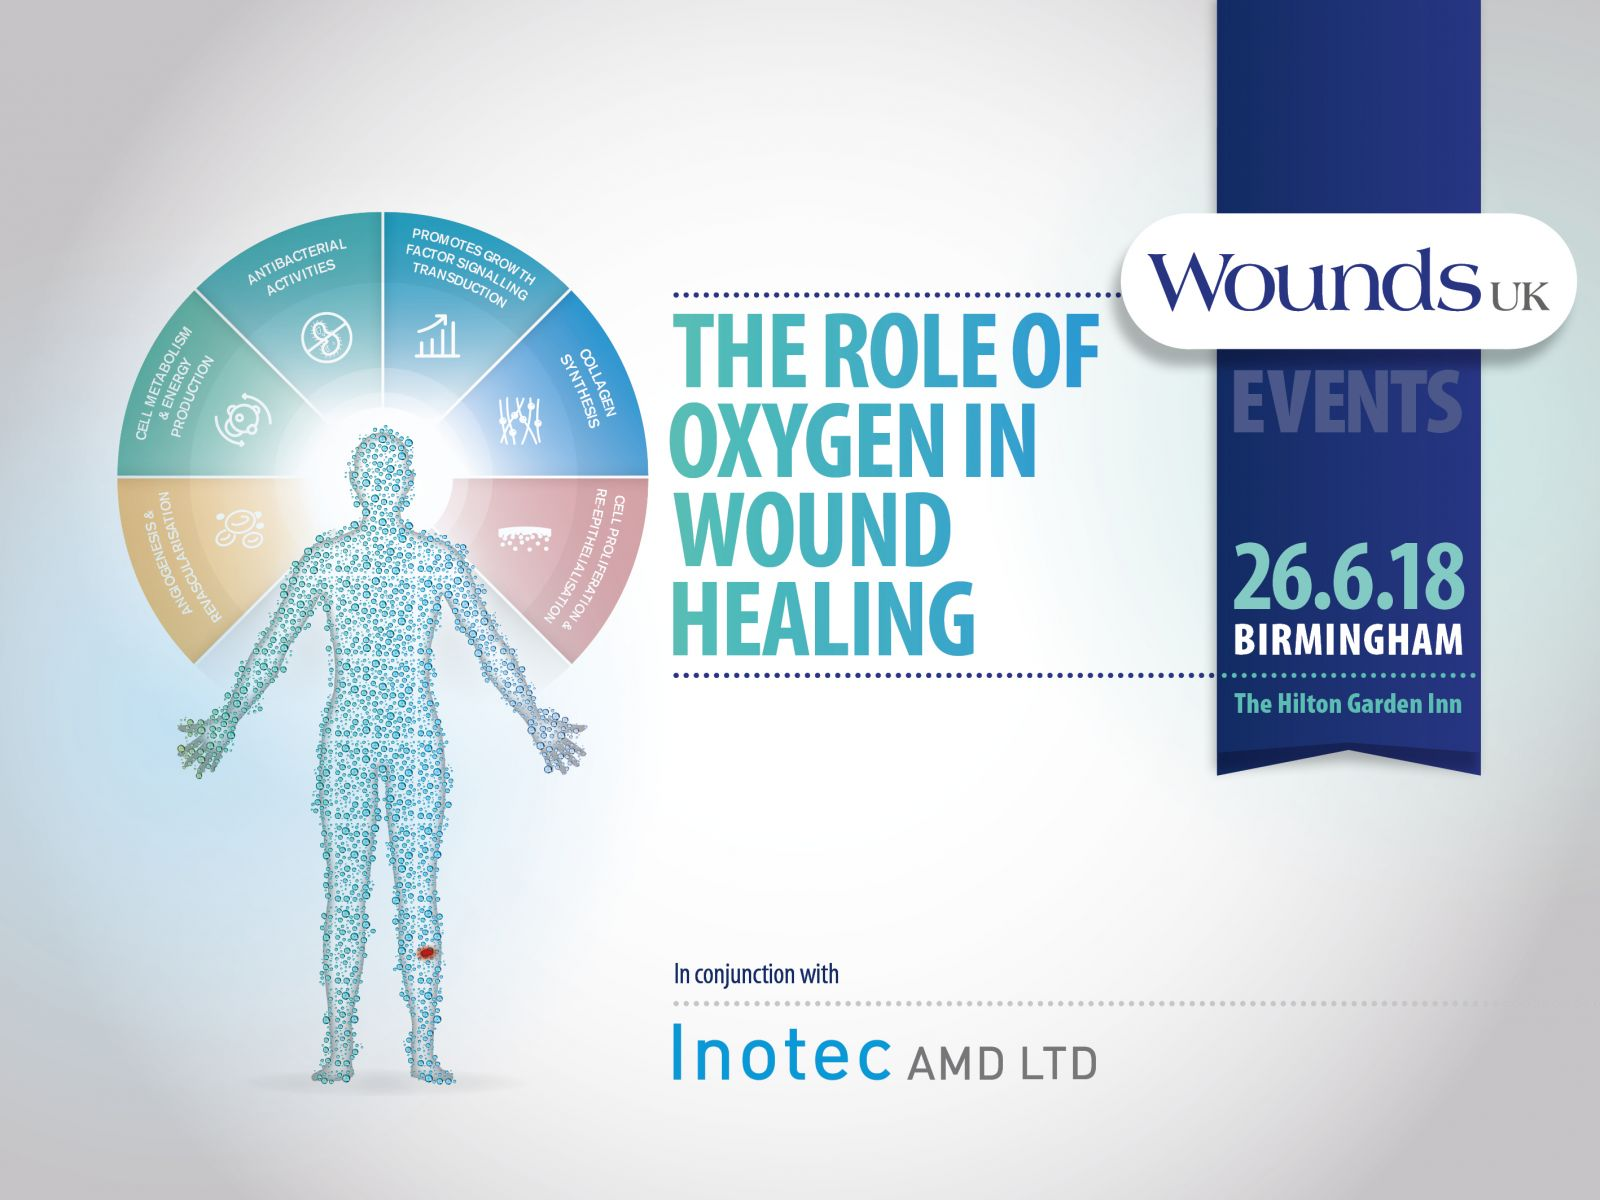 The role of oxygen in wound healing - Wounds UK